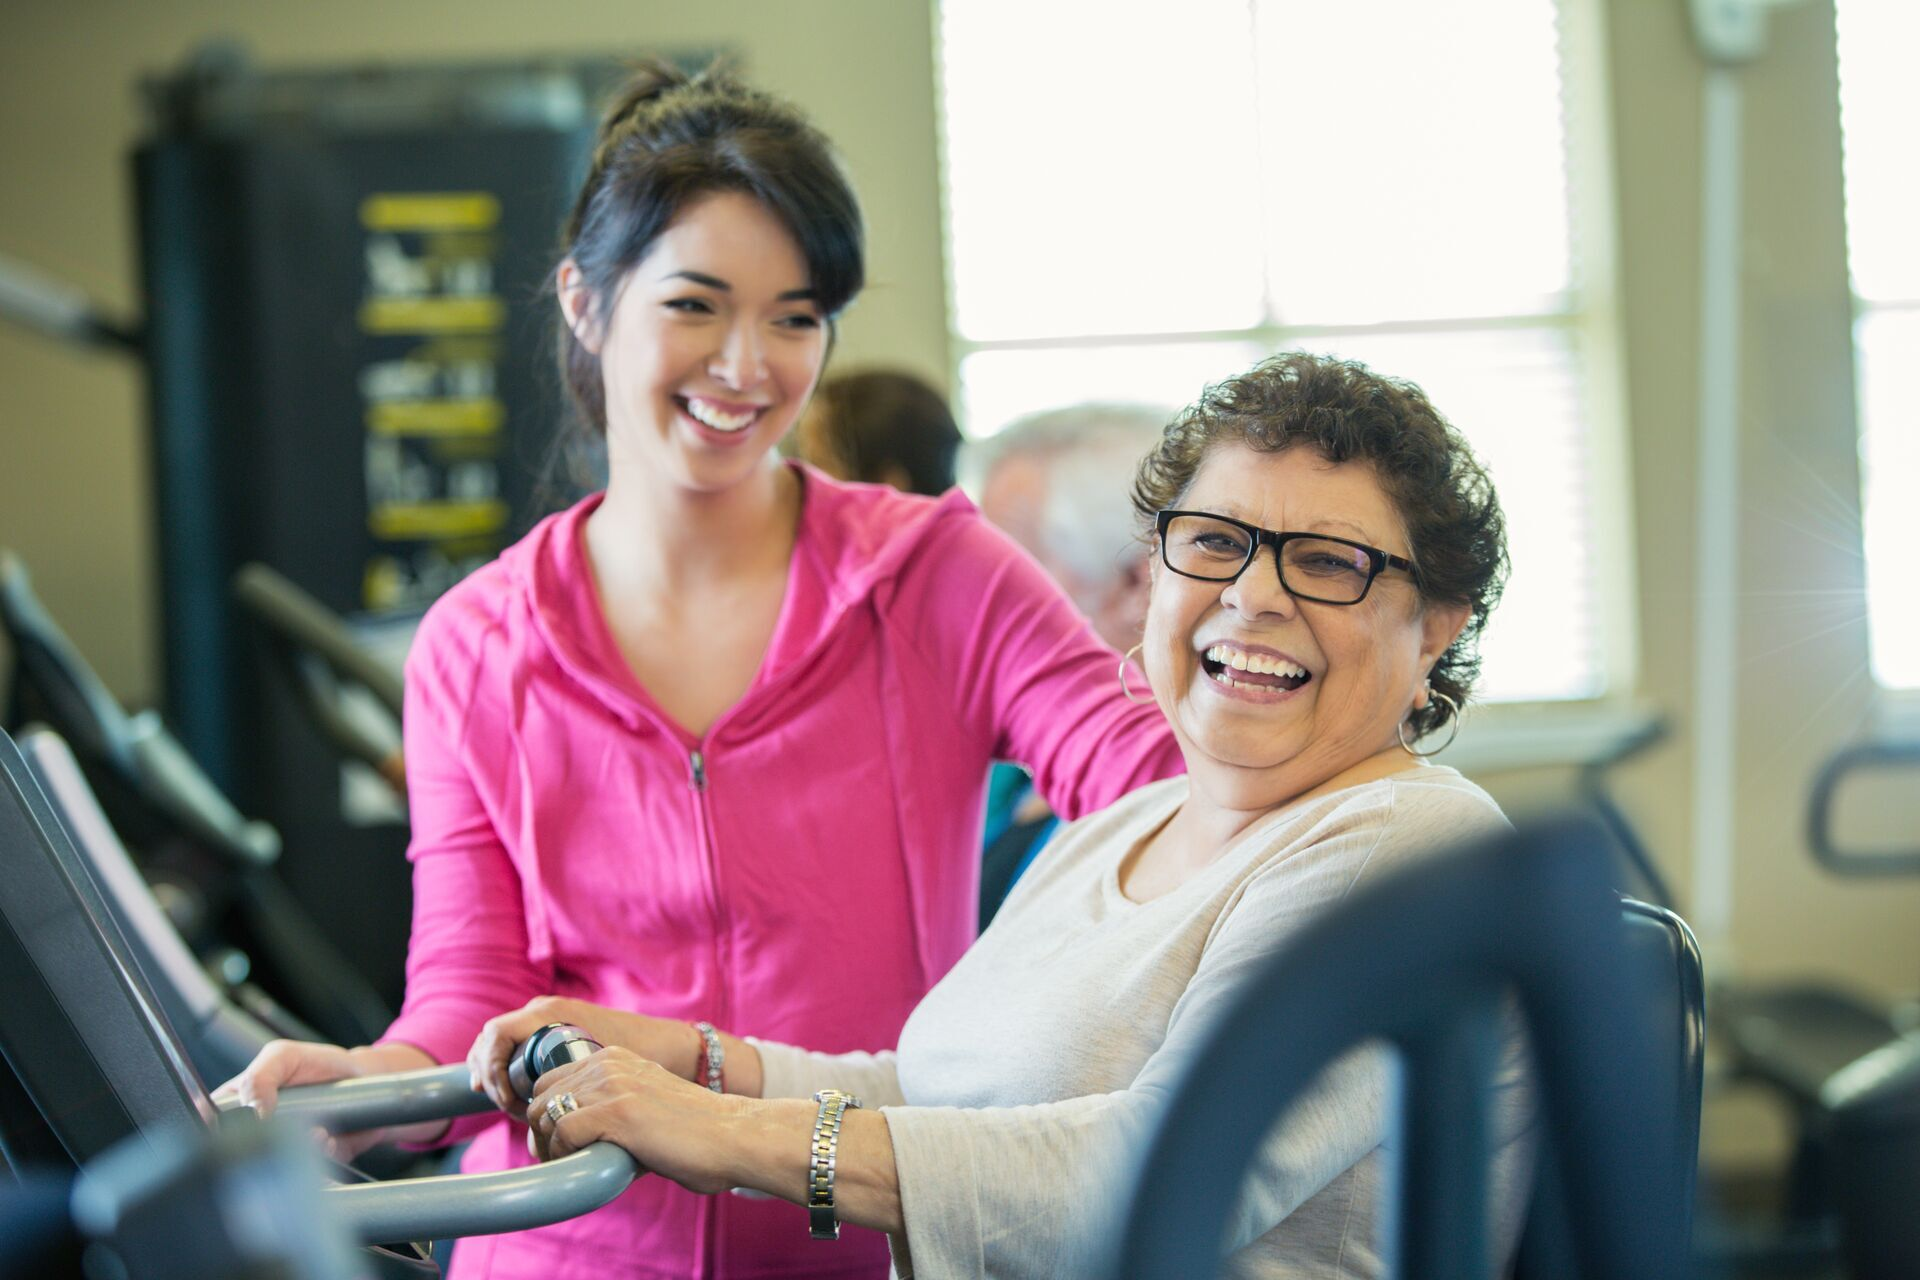 Beautiful Hispanic senior woman confidentlly uses machine at gym or senior center. Young female personal trainer helps the senior woman. They are both smiling. People are working out it the background.